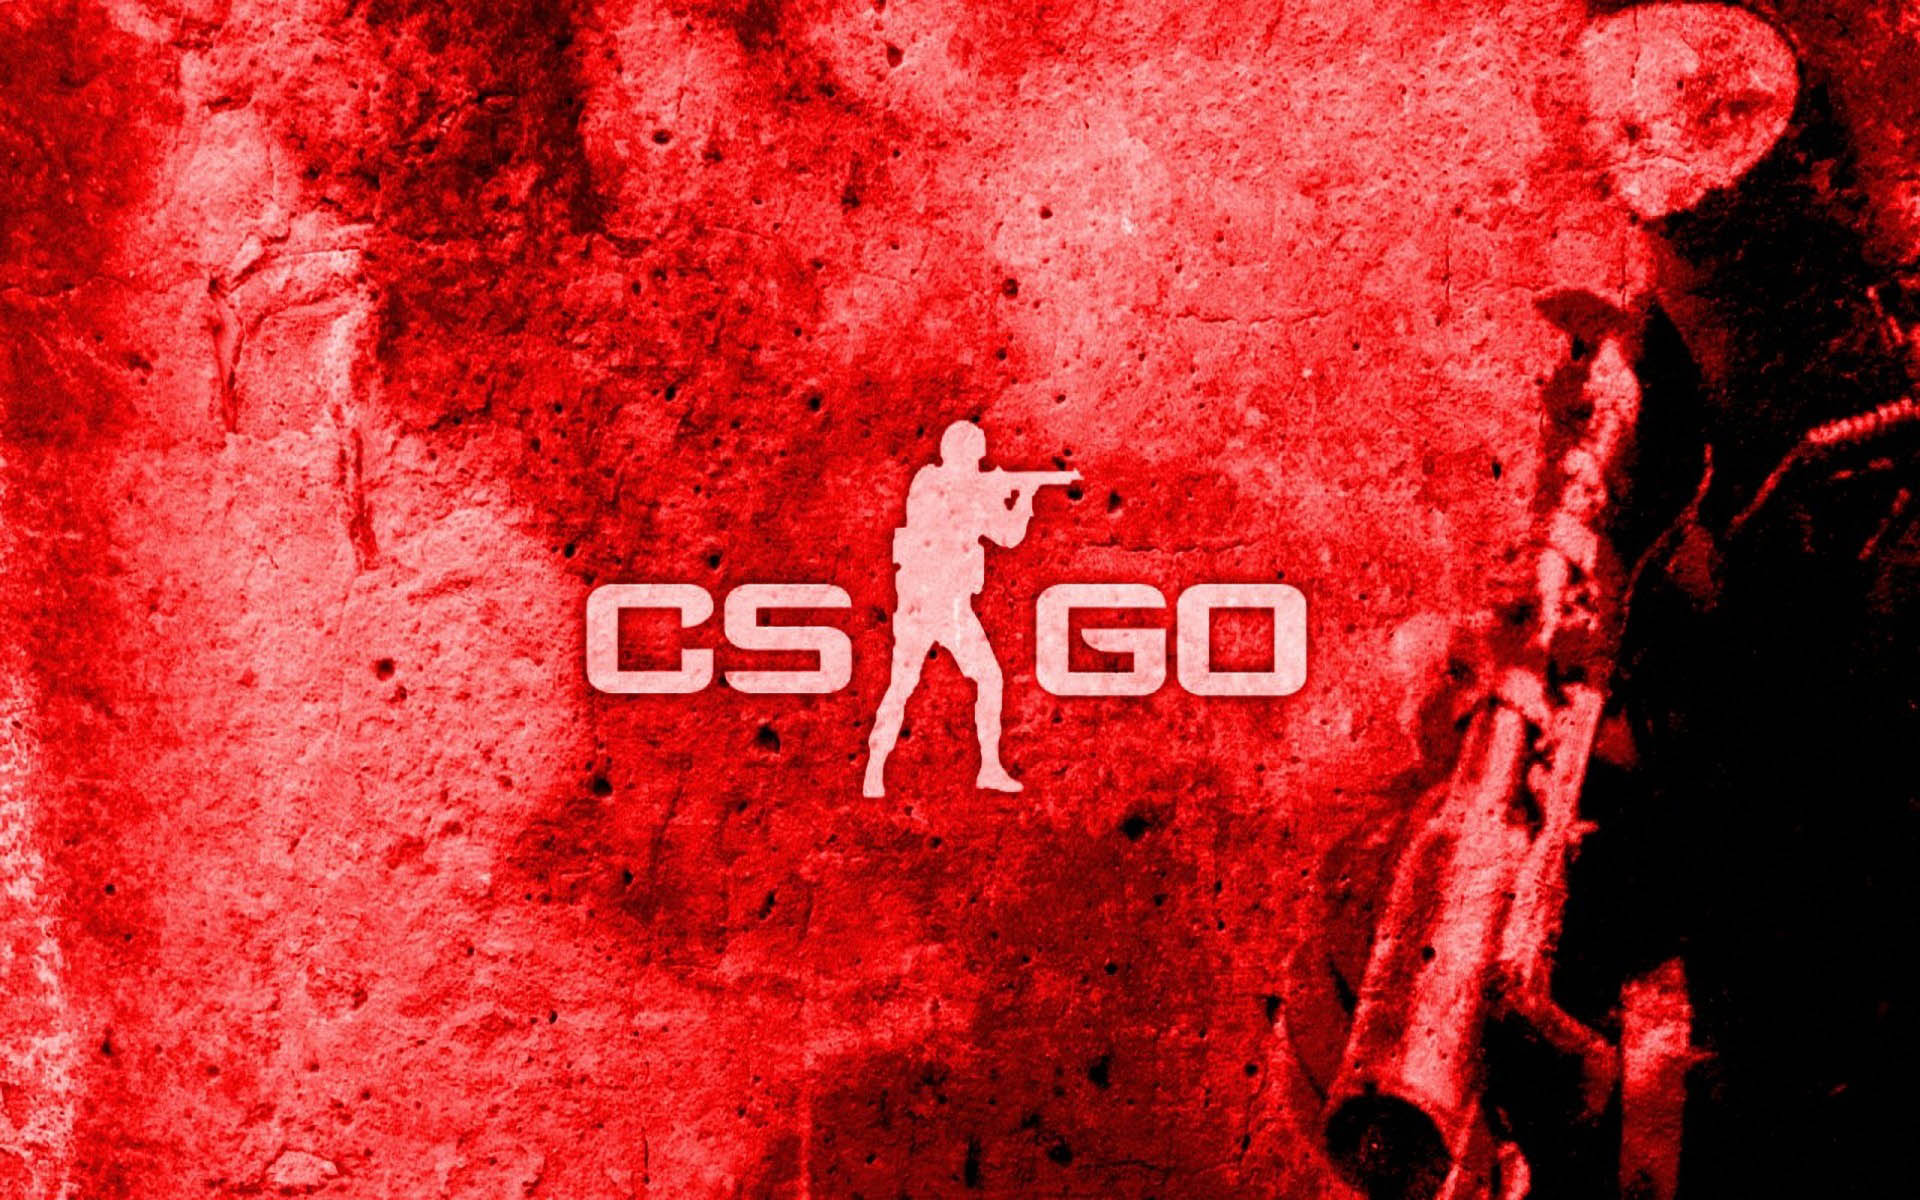 CS GO red sniper 1920x1200 Wallpapers 1920x1200 Wallpapers 1920x1200